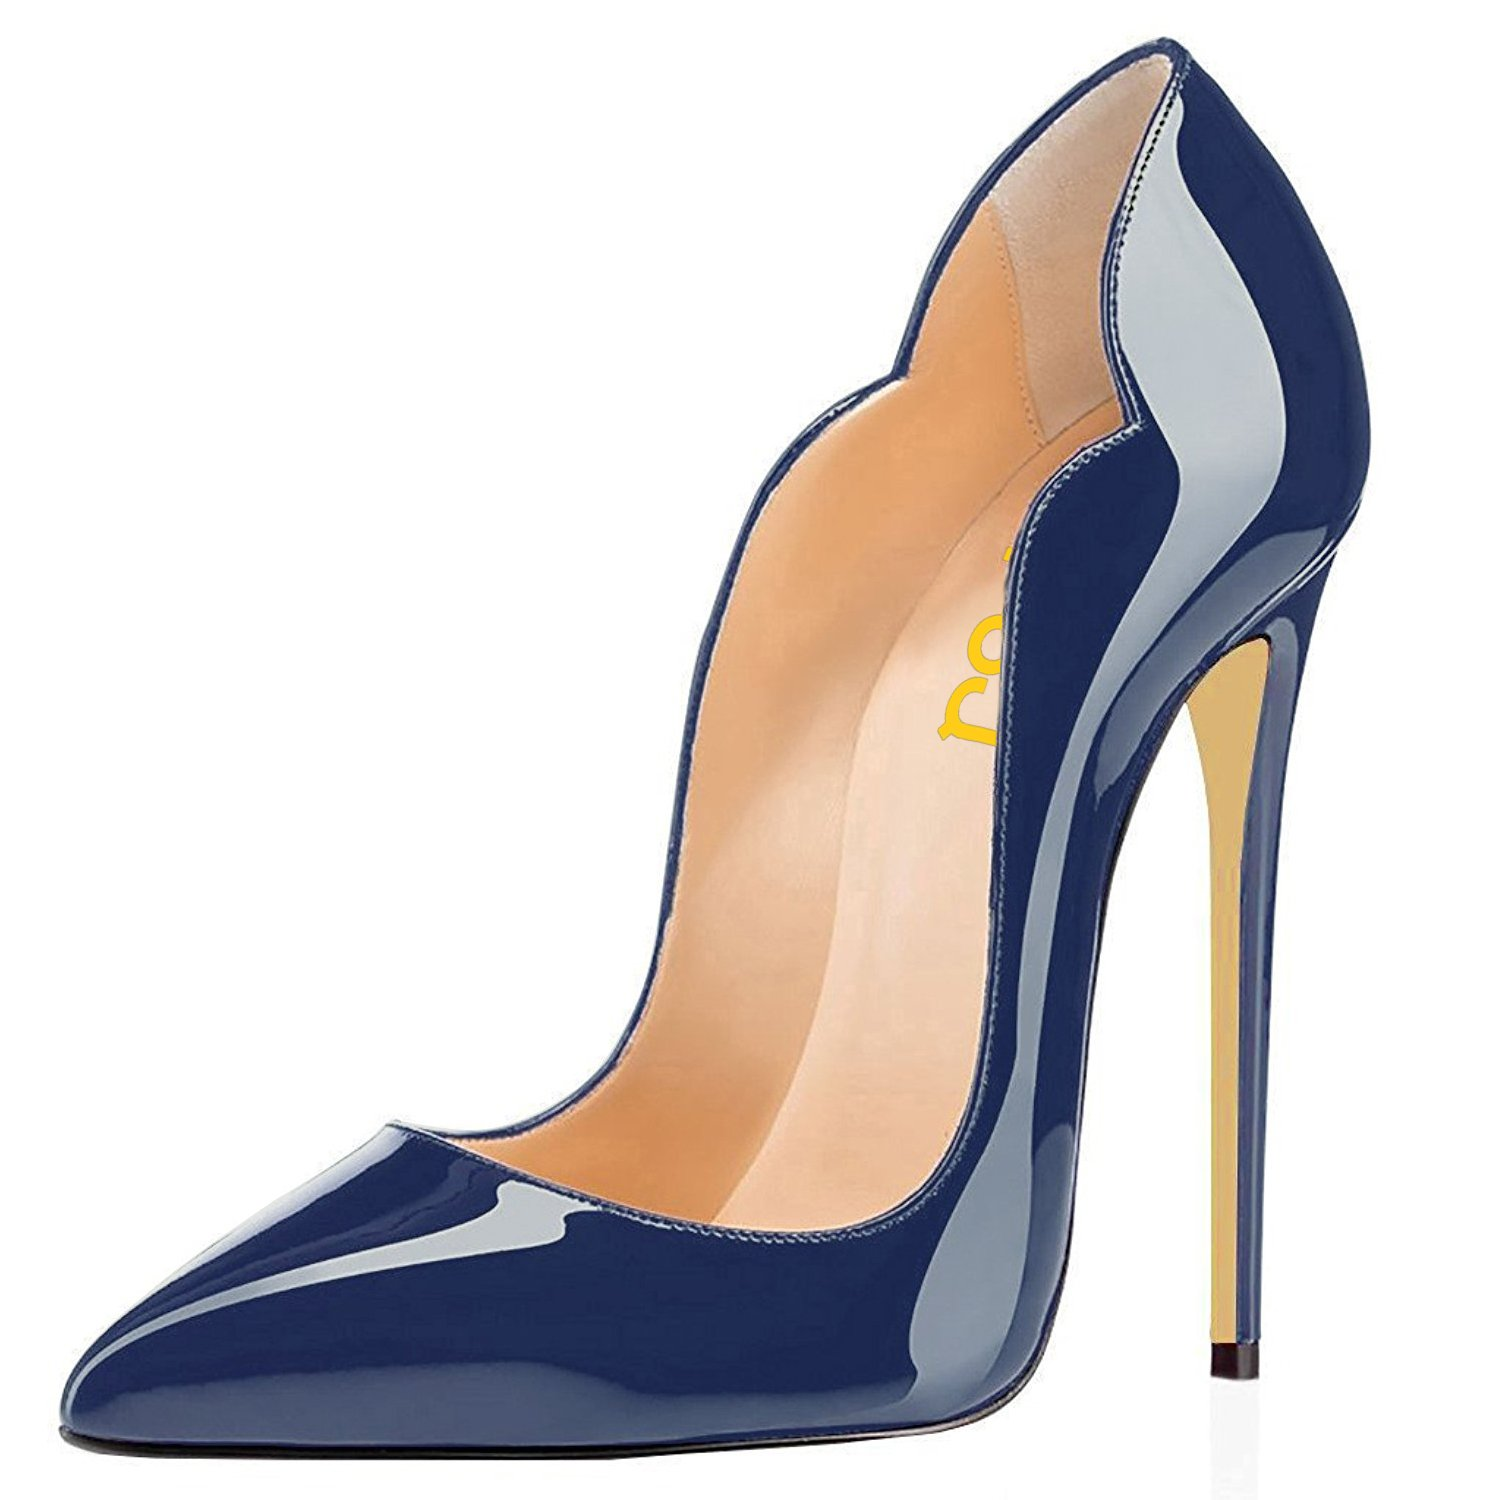 FSJ Women Classic Pointed Toe High Heels Sexy Stiletto Pumps Office Lady Dress Shoes Size 4-15 US B07B2S917T 10 B(M) US|Navy-patent